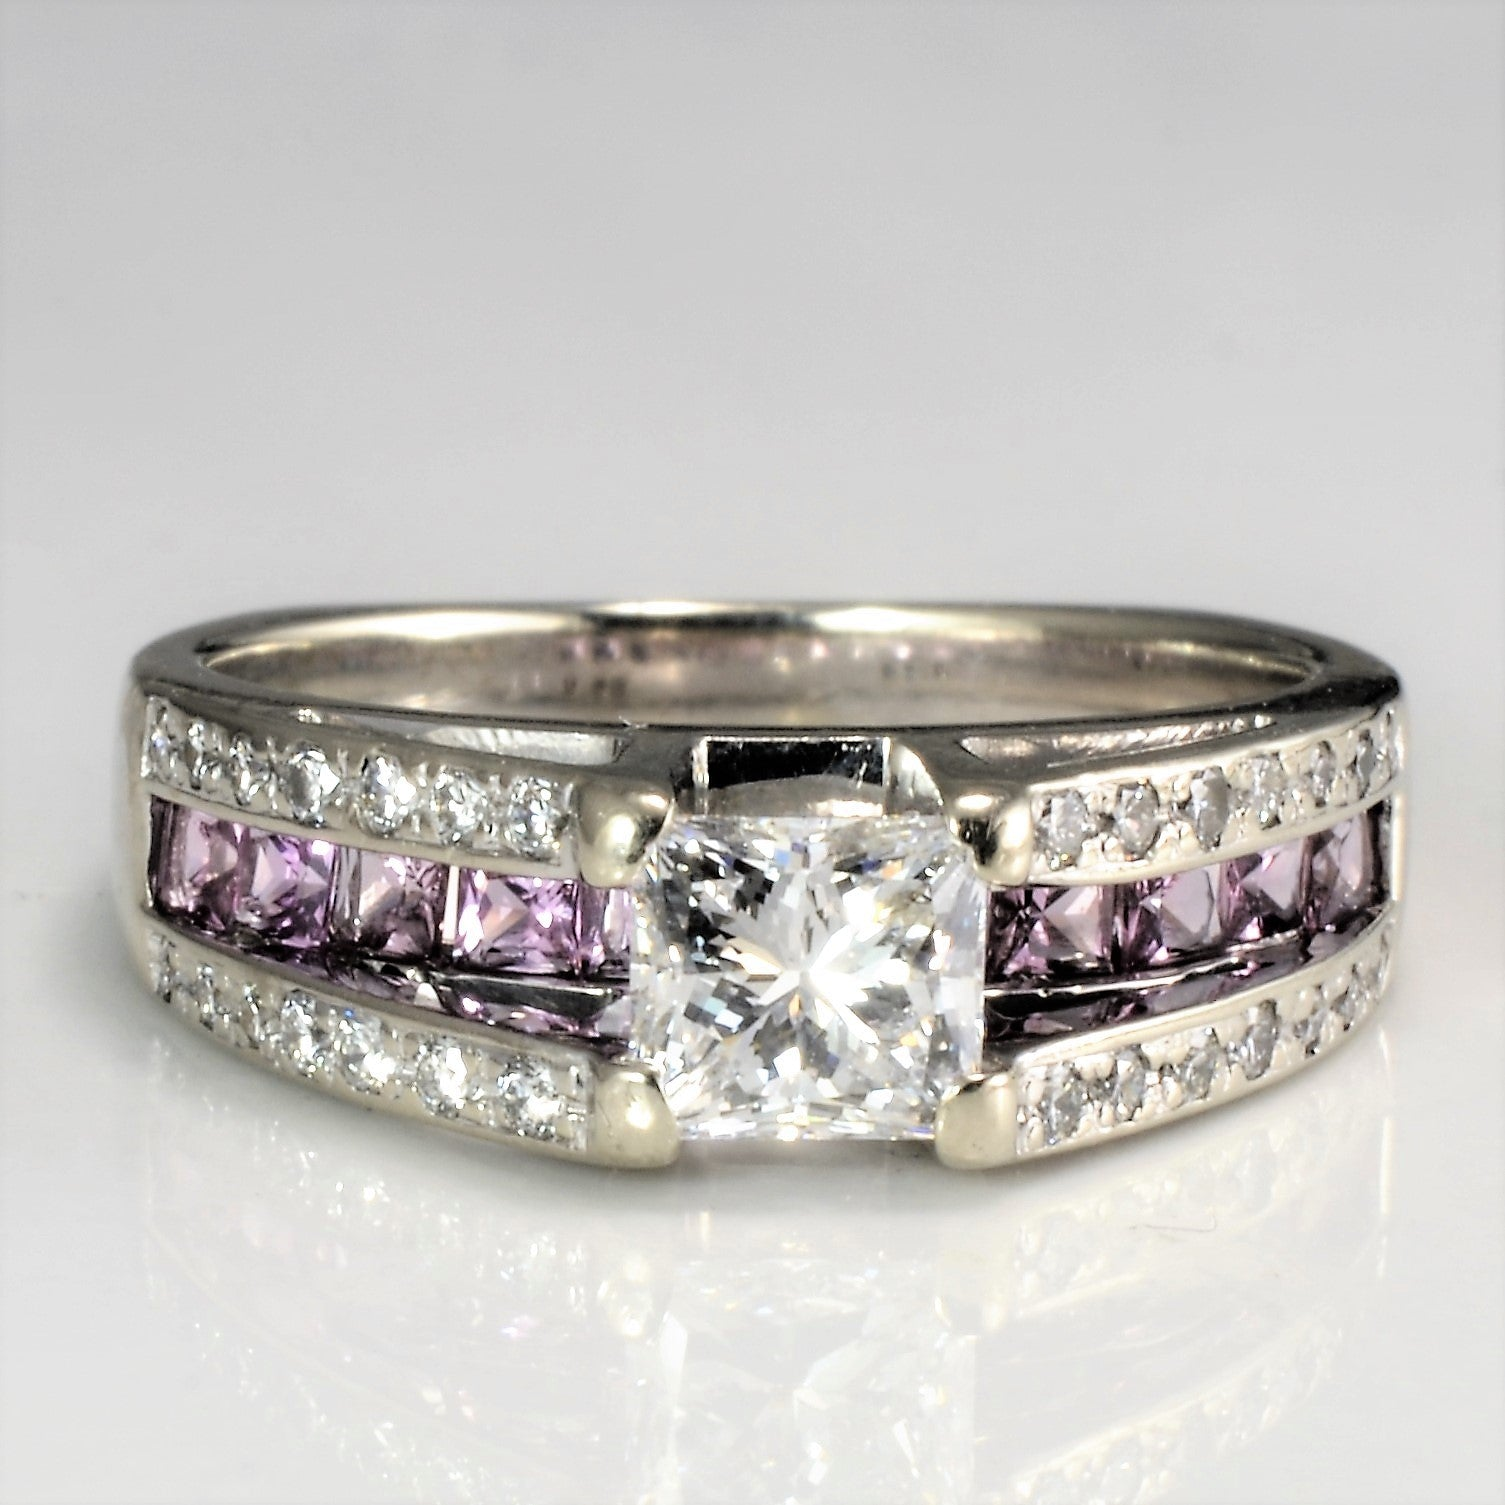 High Set Diamond & Sapphire Engagement Ring | 0.92 ctw, SZ 7 |